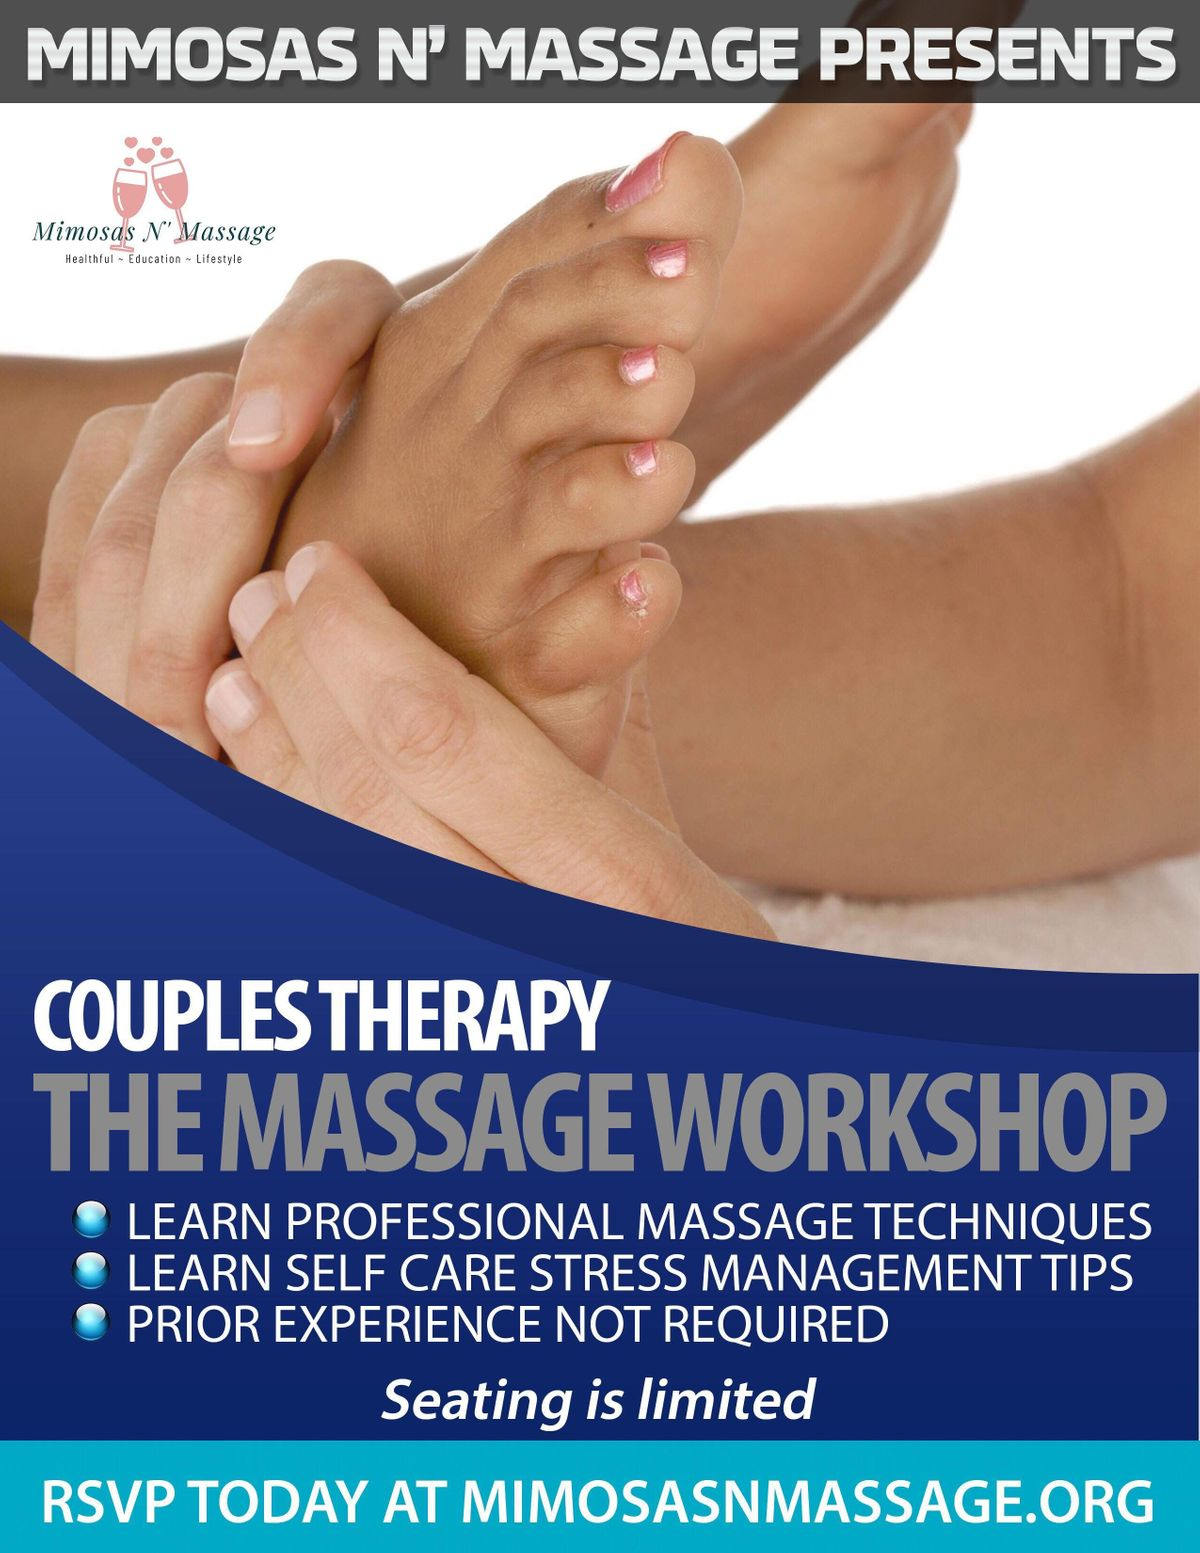 Couples Therapy - The Massage Workshop